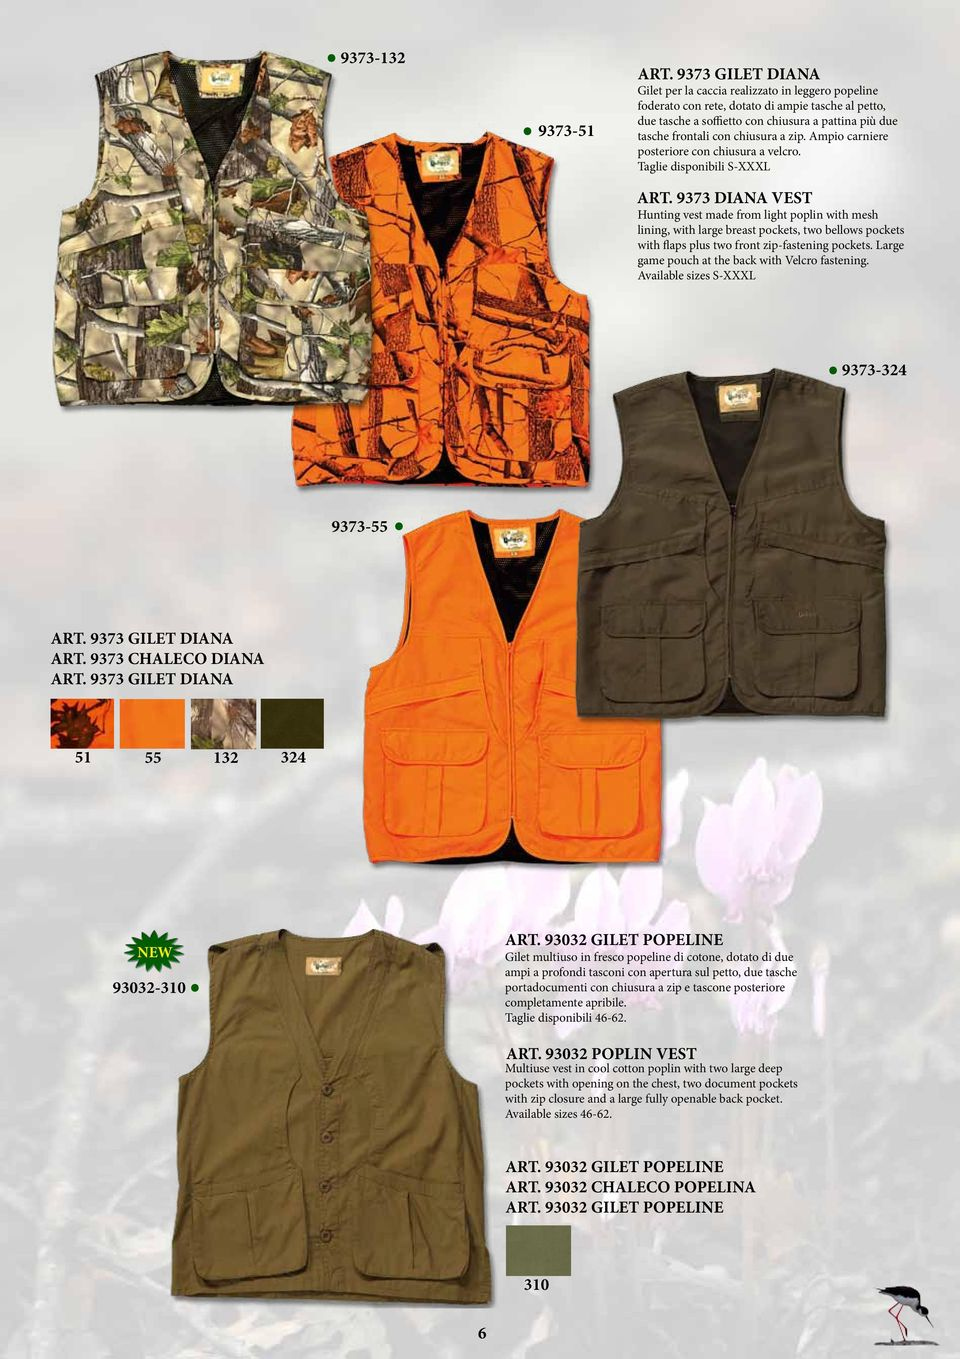 breast pockets, two bellows pockets with flaps plus two front zip-fastening pockets Large game pouch at the back with Velcro fastening Available sizes S-XXXL 9373-324 9373-55 ART 9373 GILET DIANA ART